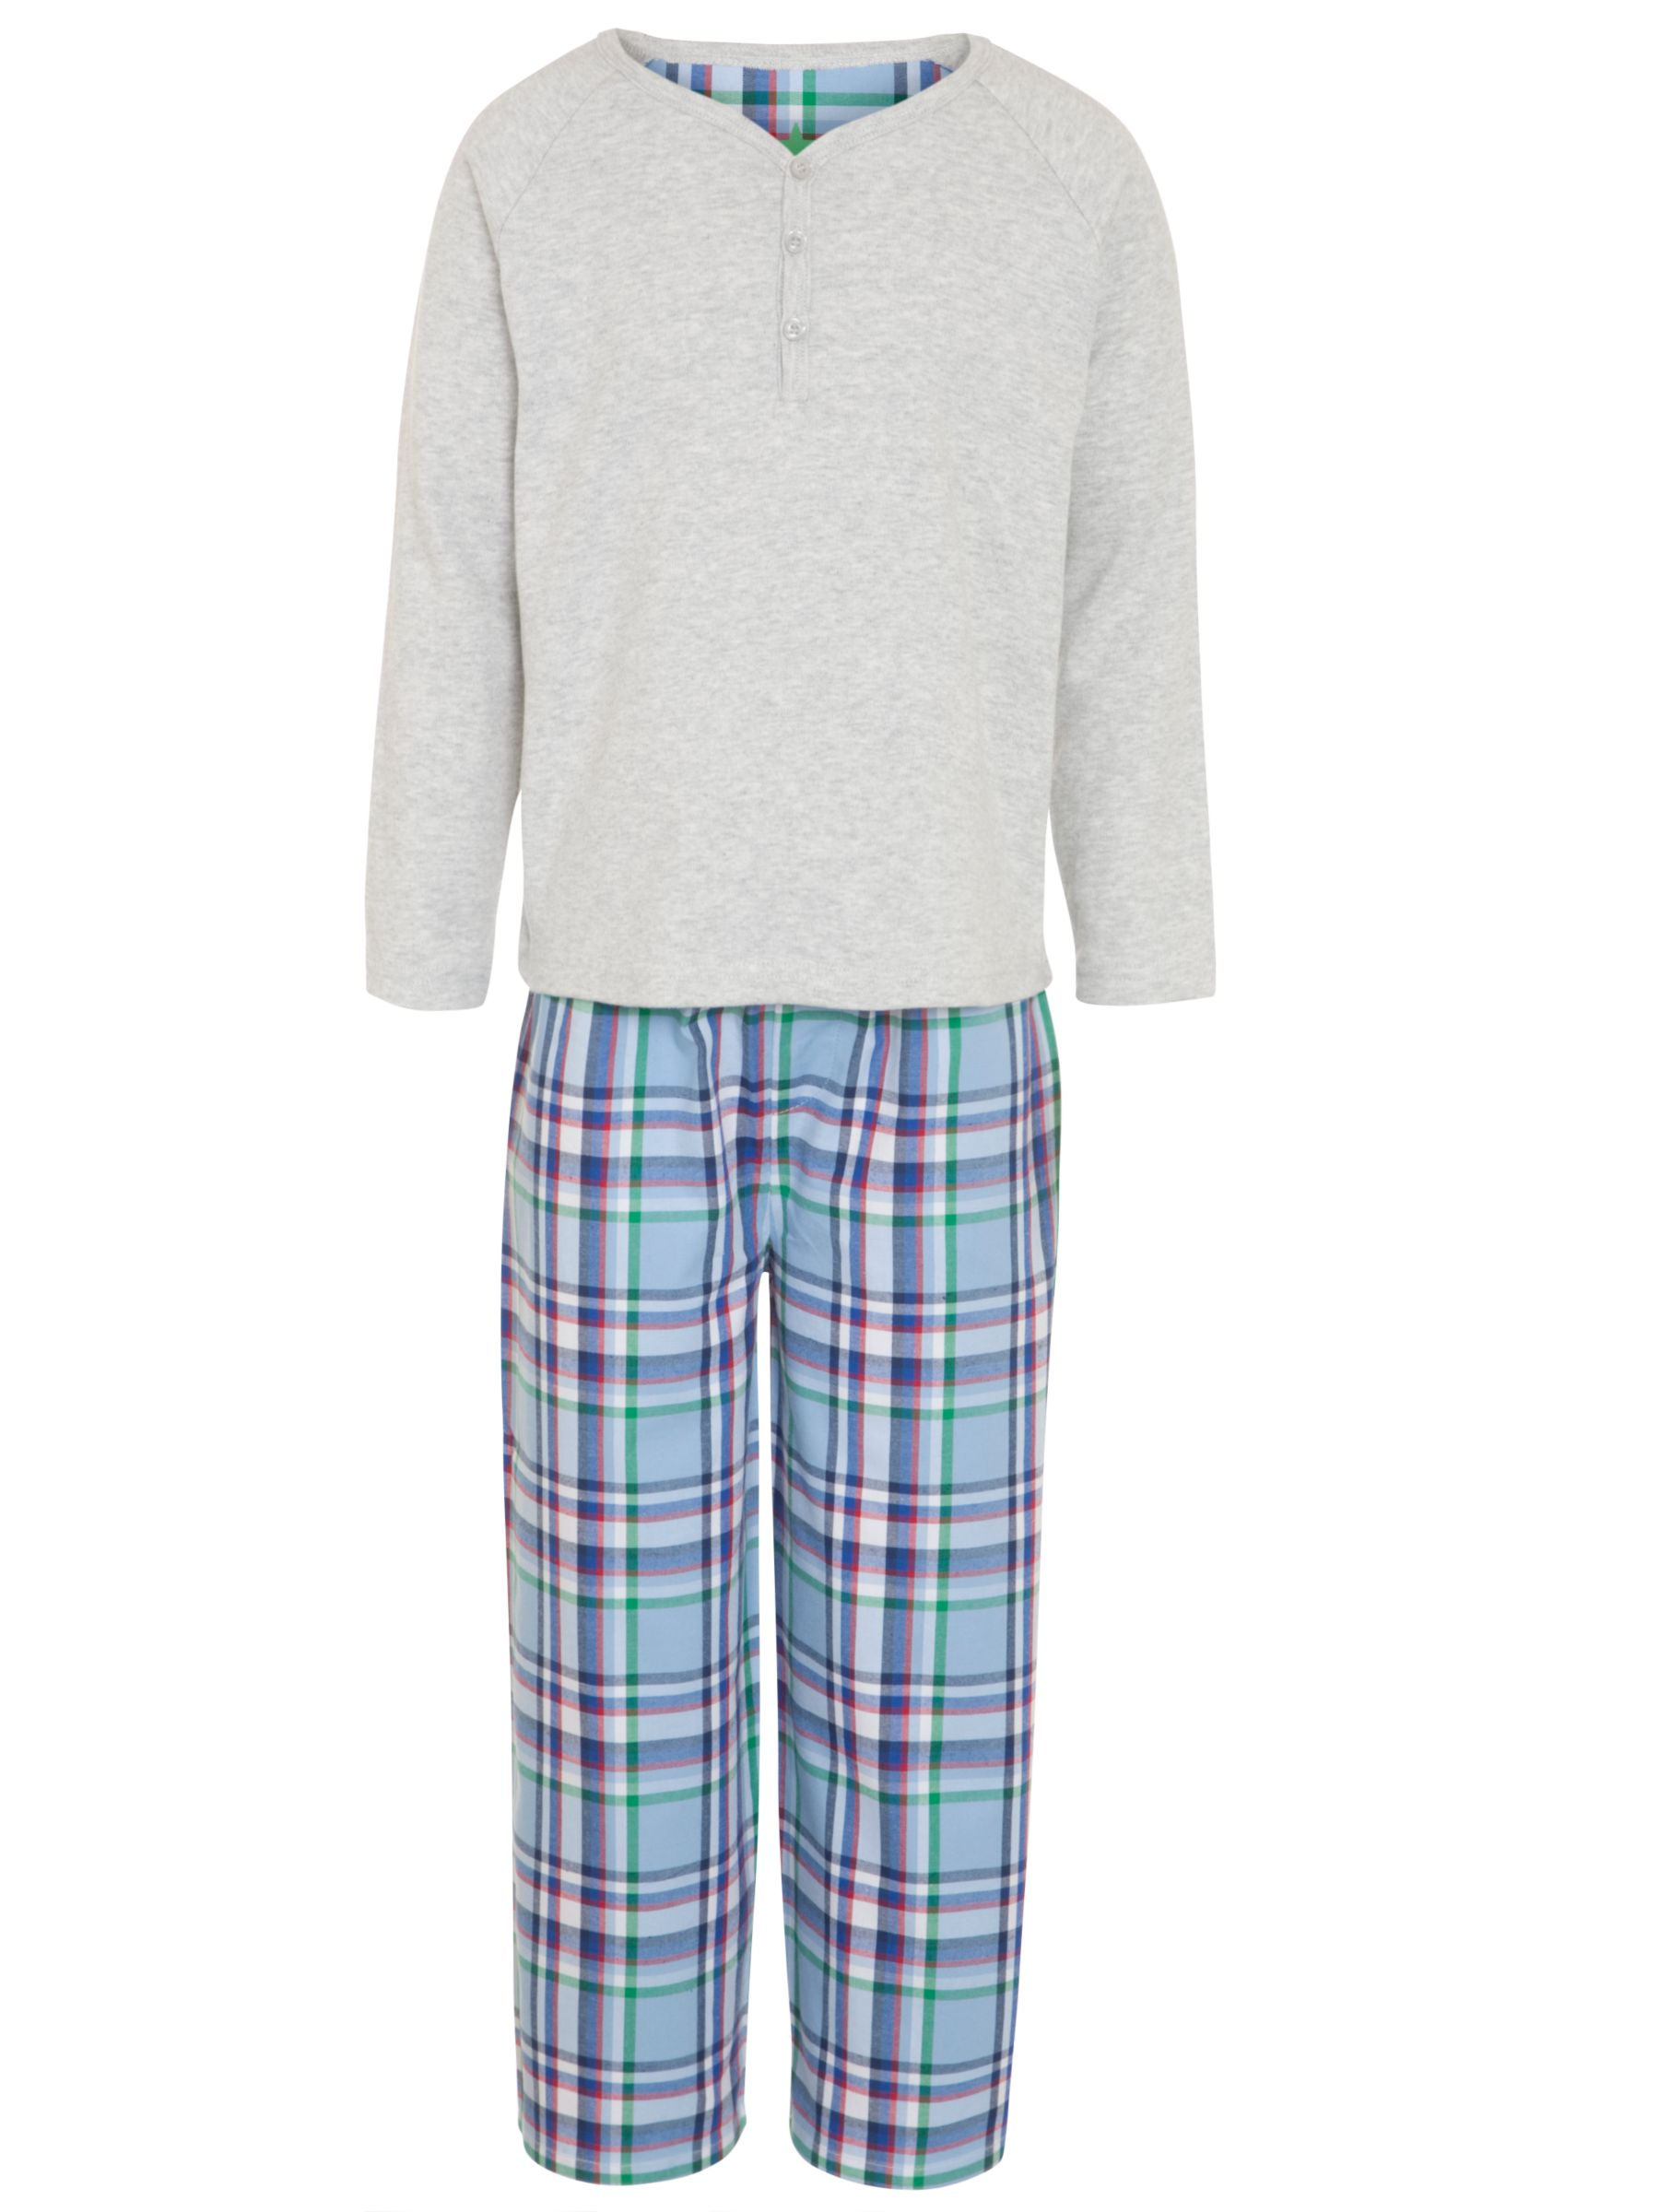 John Lewis Boy Jersey Top & Checked Bottom Pyjamas, Grey/Multi